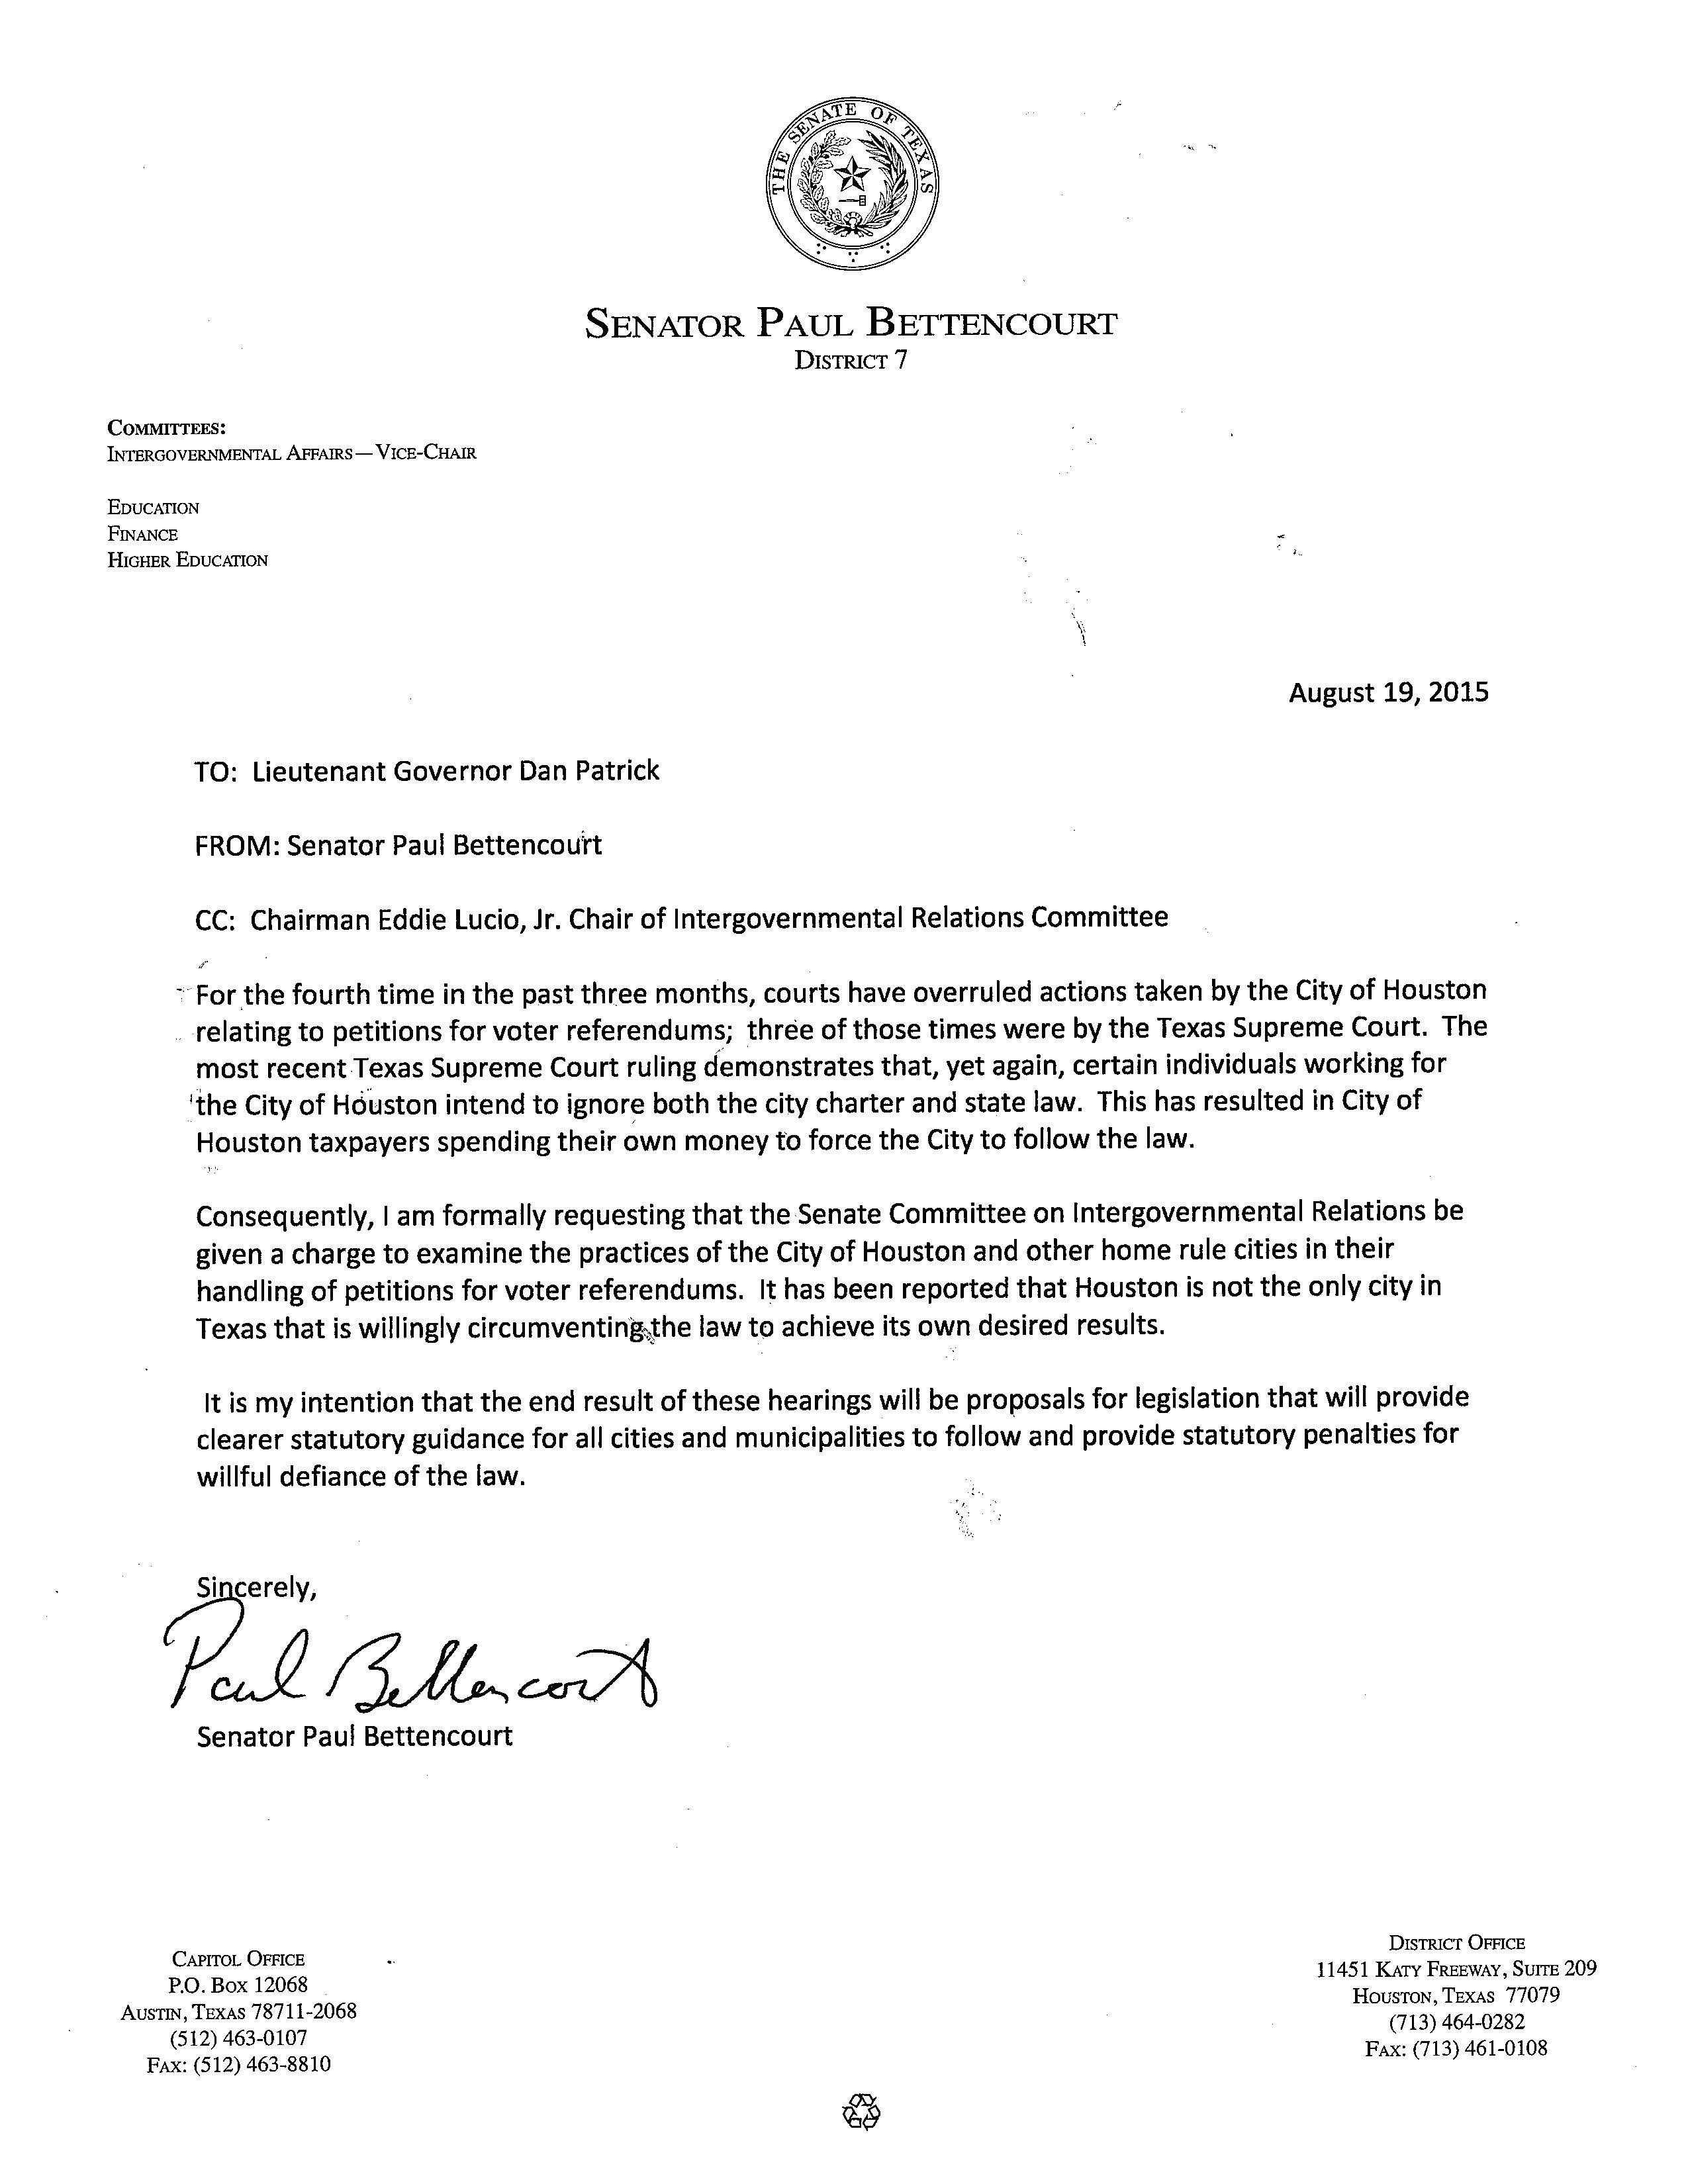 Bettencourt Letter Requesting IGR Interim Charge